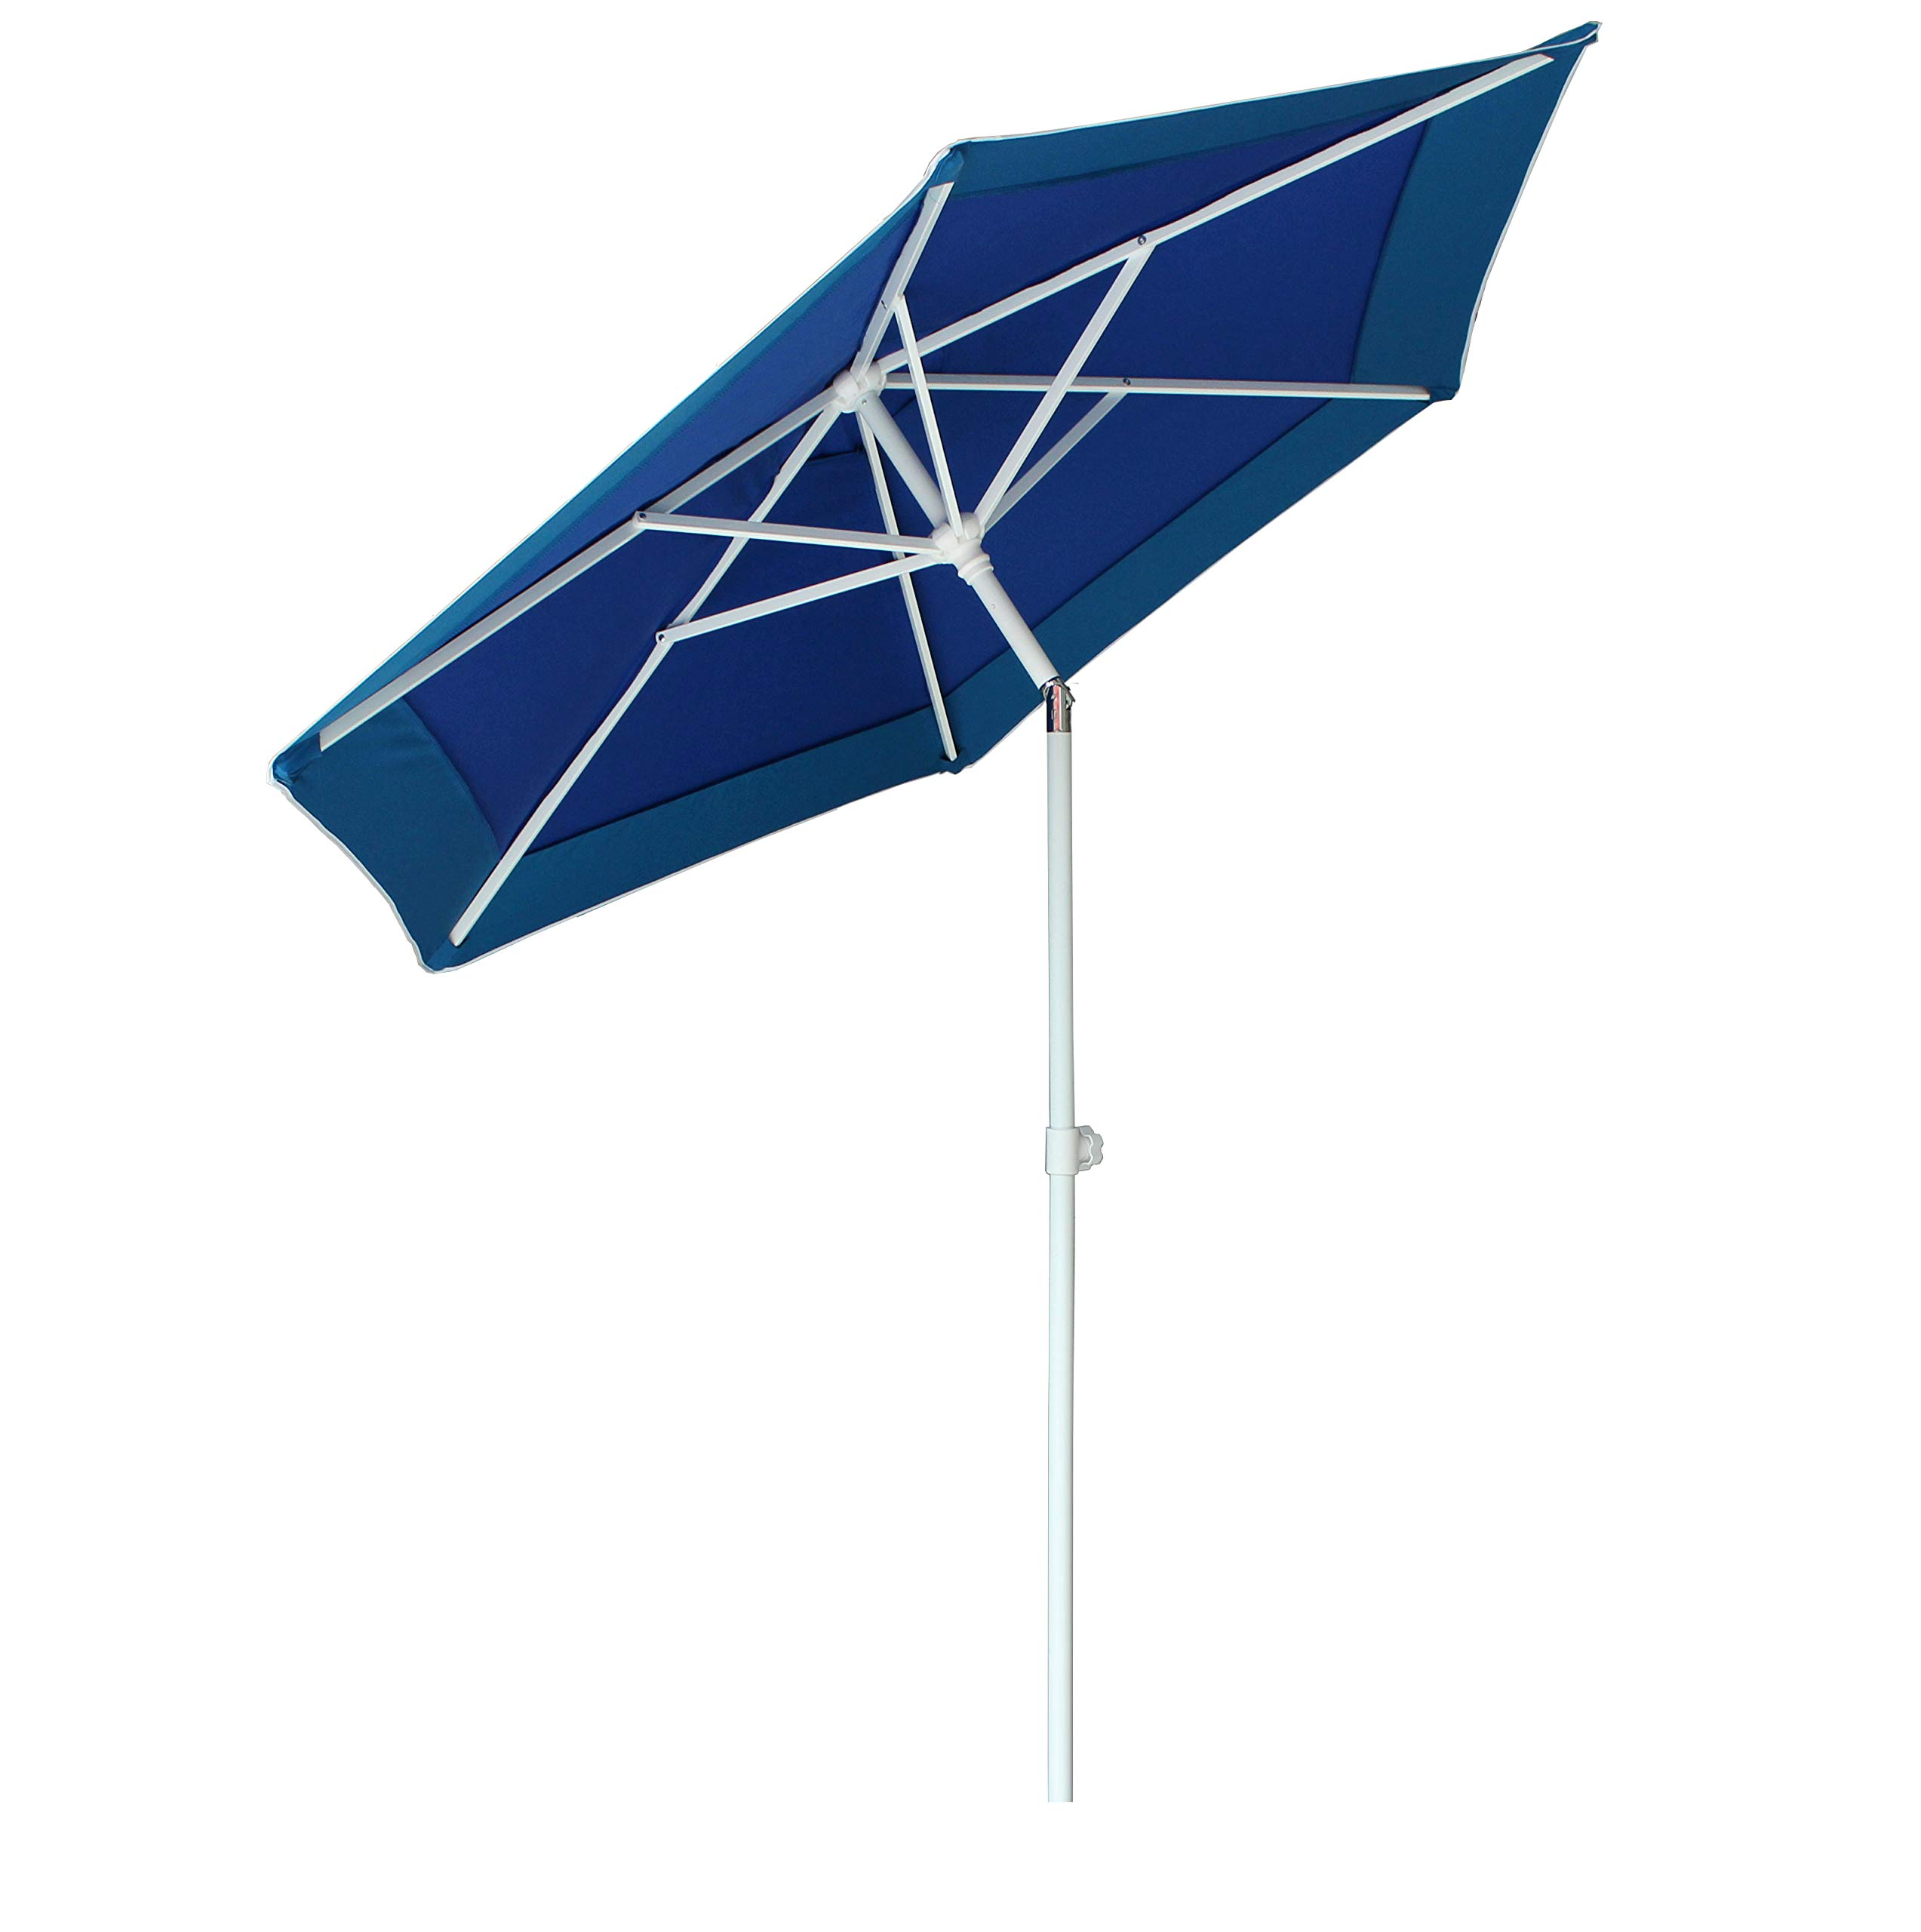 AMMSUN 6 Panels 7ft Polyester Fabric Heavy Duty Air-Vent UV Protection Patio Umbrella Beach Umbrella with Zinc Tilt (Dark Blue, 7ft) -  - shades-parasols, patio-furniture, patio - 719jp7YxsJL -